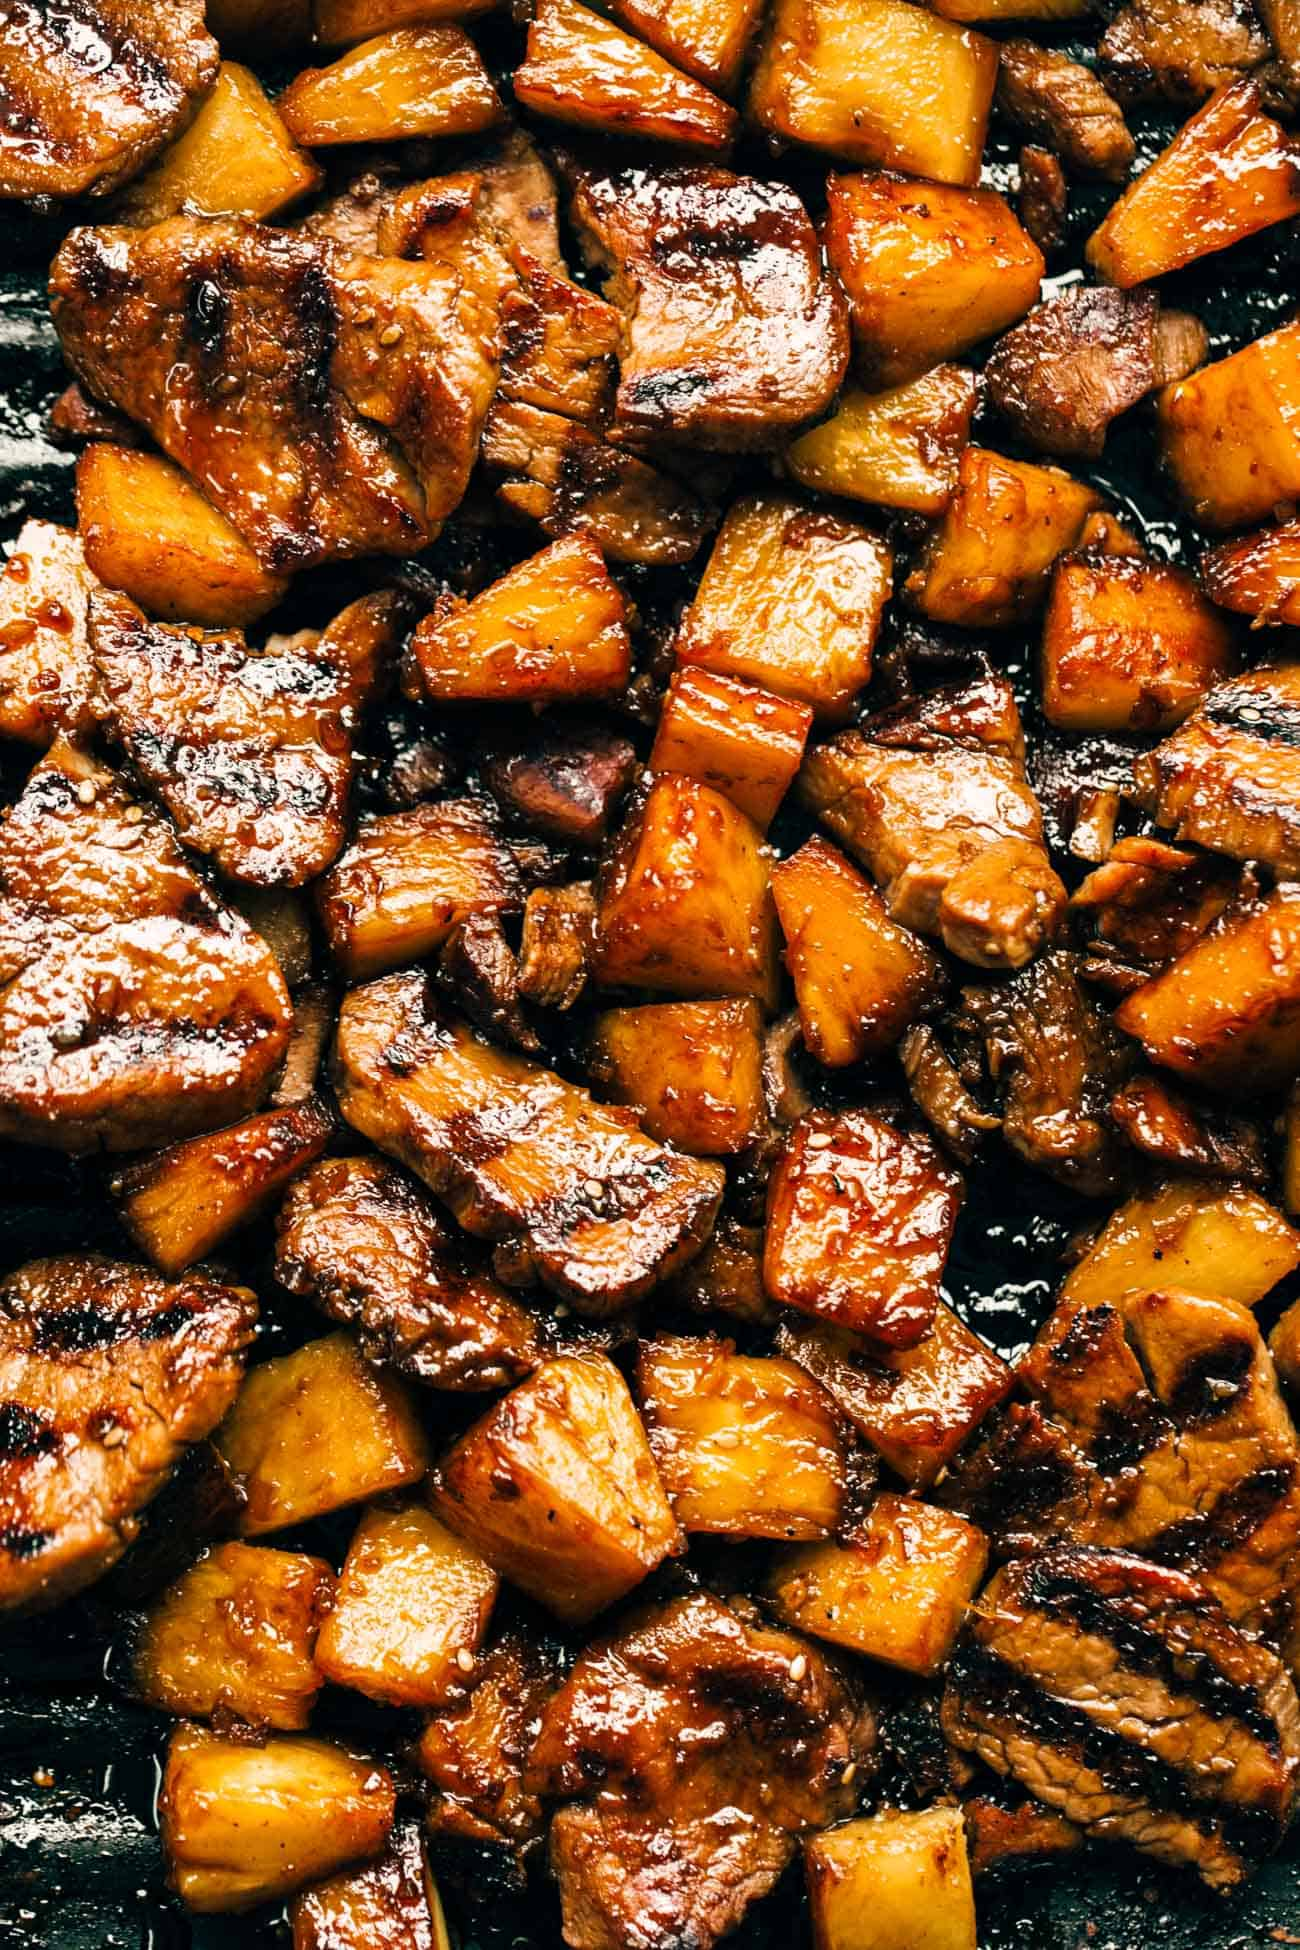 Close-up of pineapple and pork.